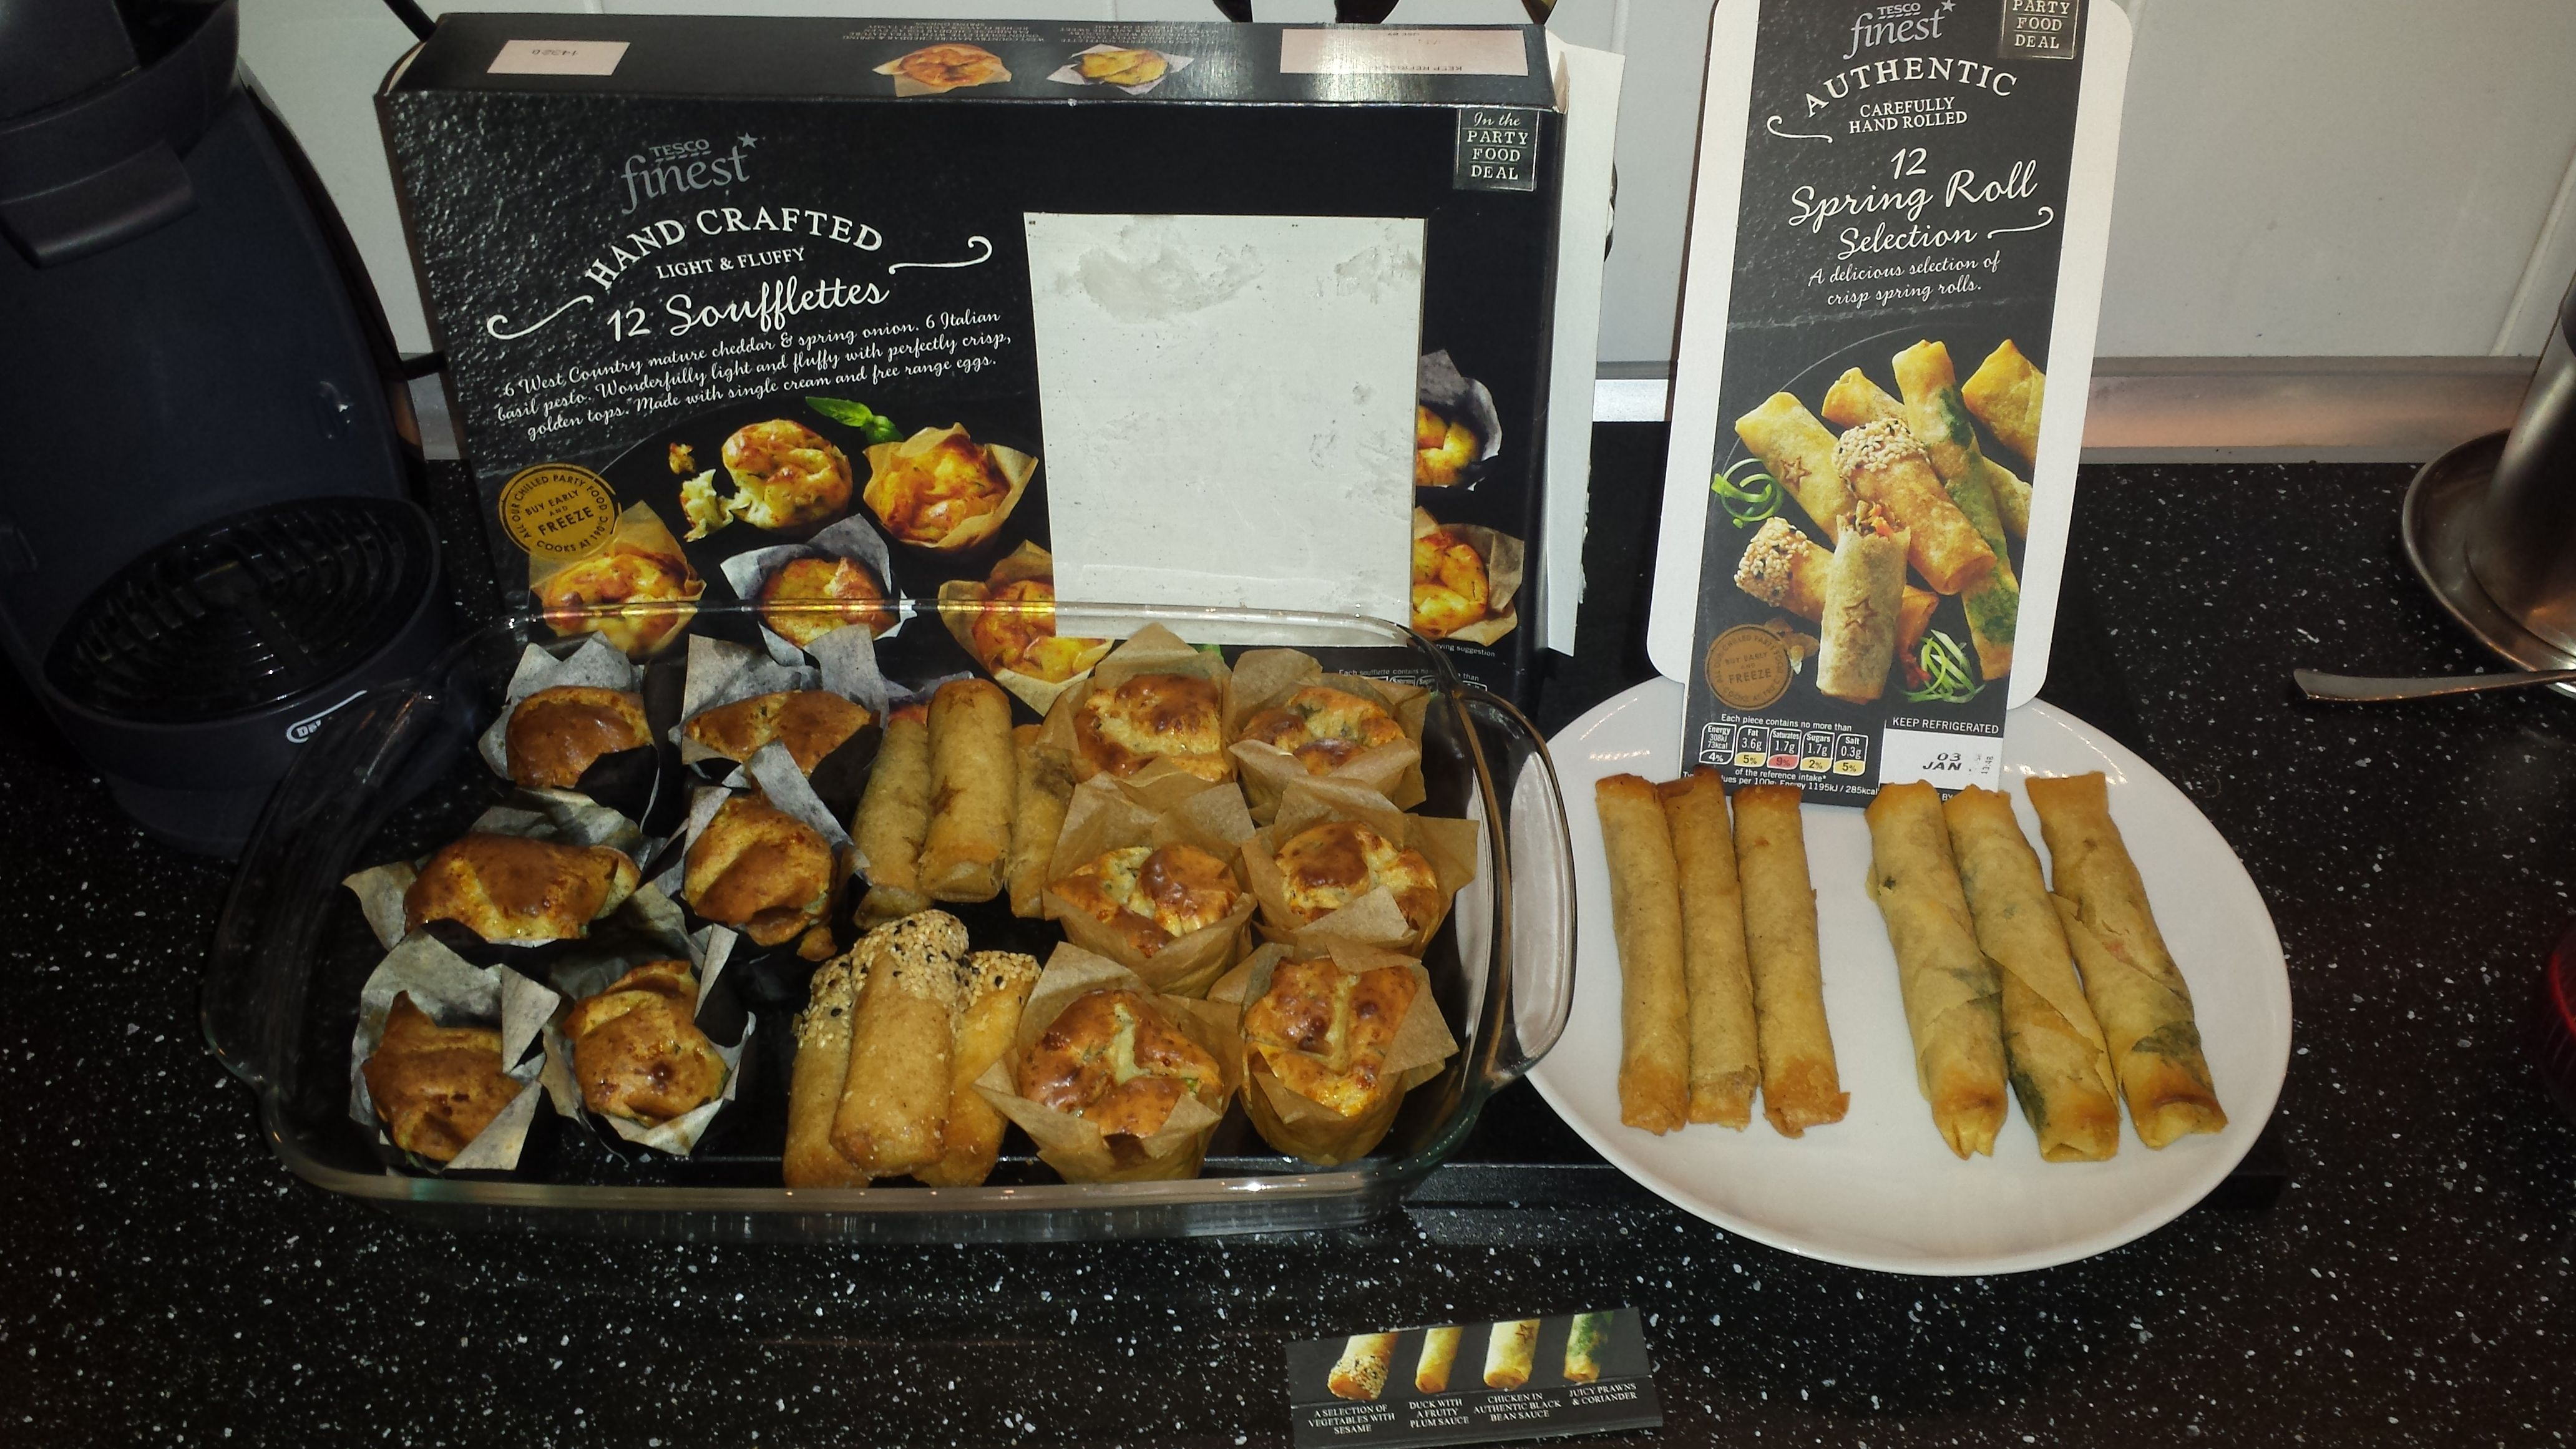 Tesco Finest Party Food Range Thanks For The Vouchers The